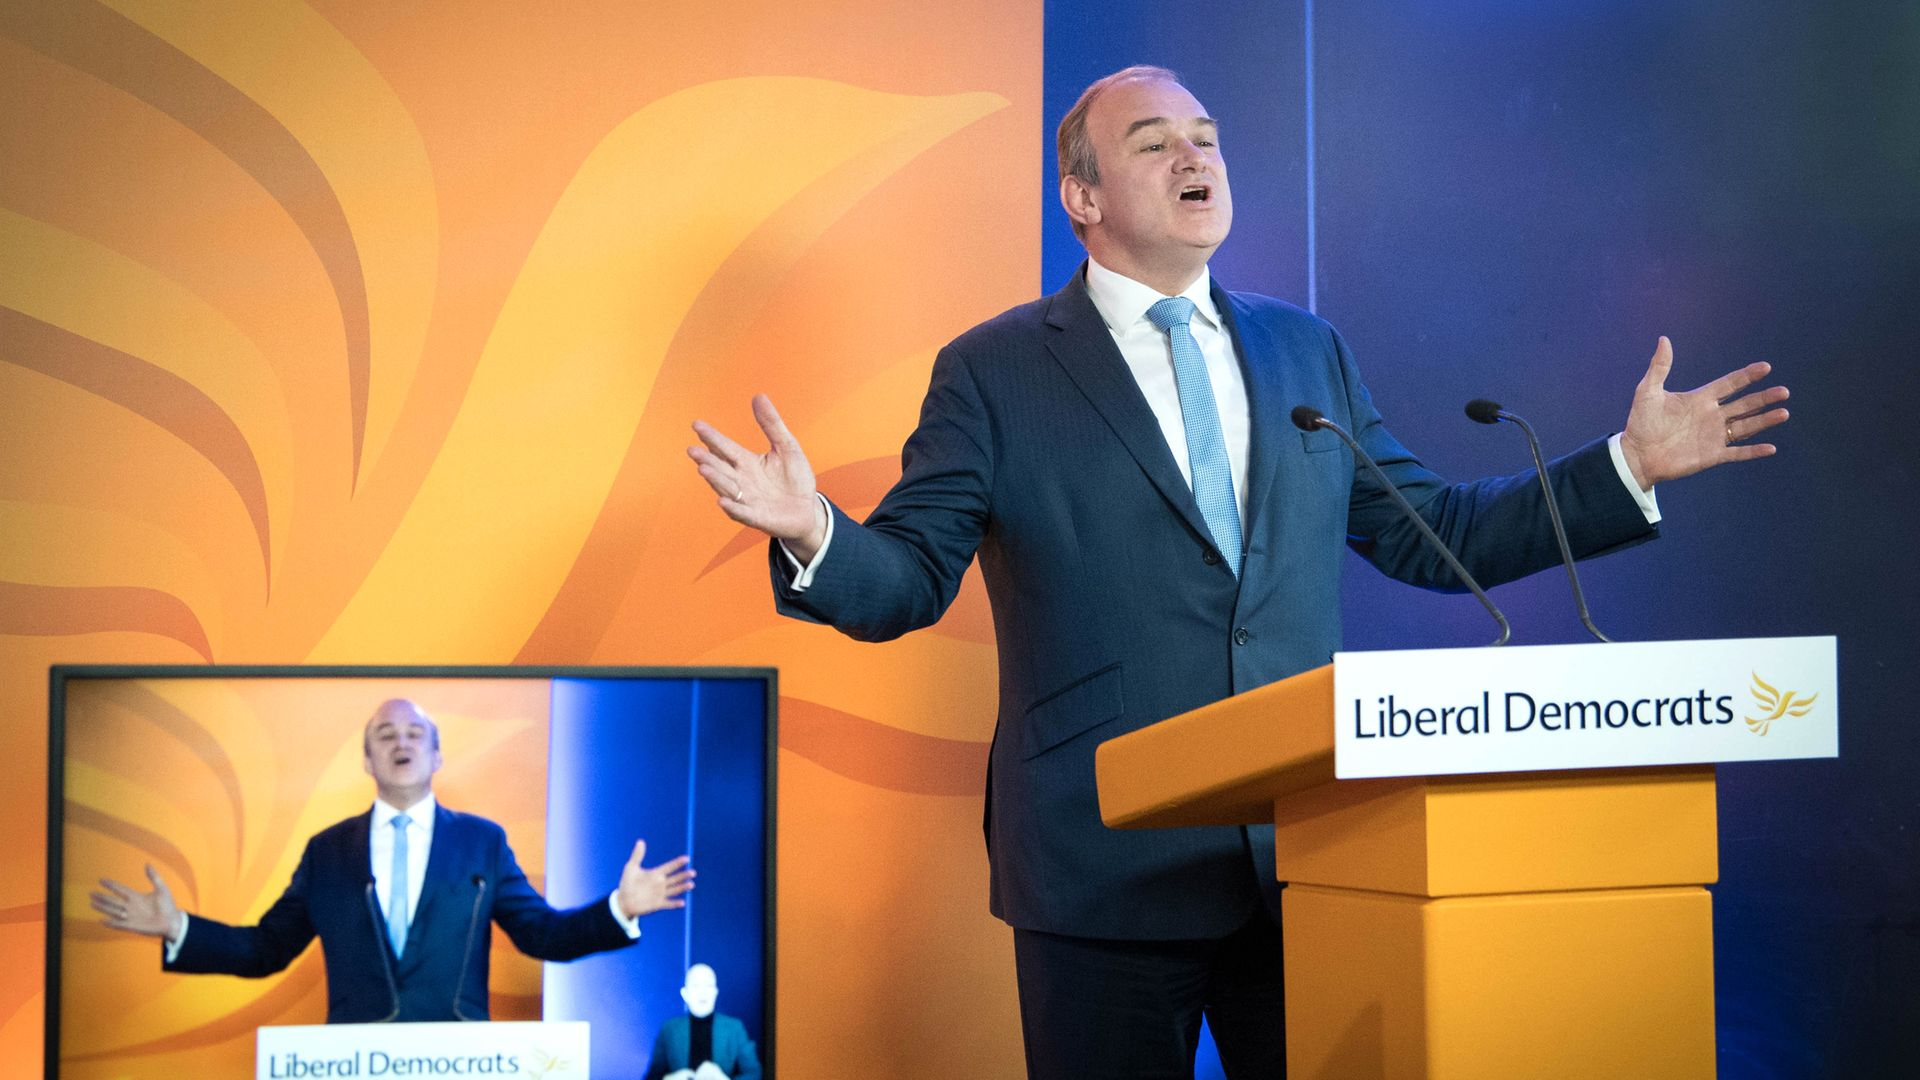 Liberal Democrat leader Sir Ed Davey delivers a keynote speech during an online party conference - Credit: PA